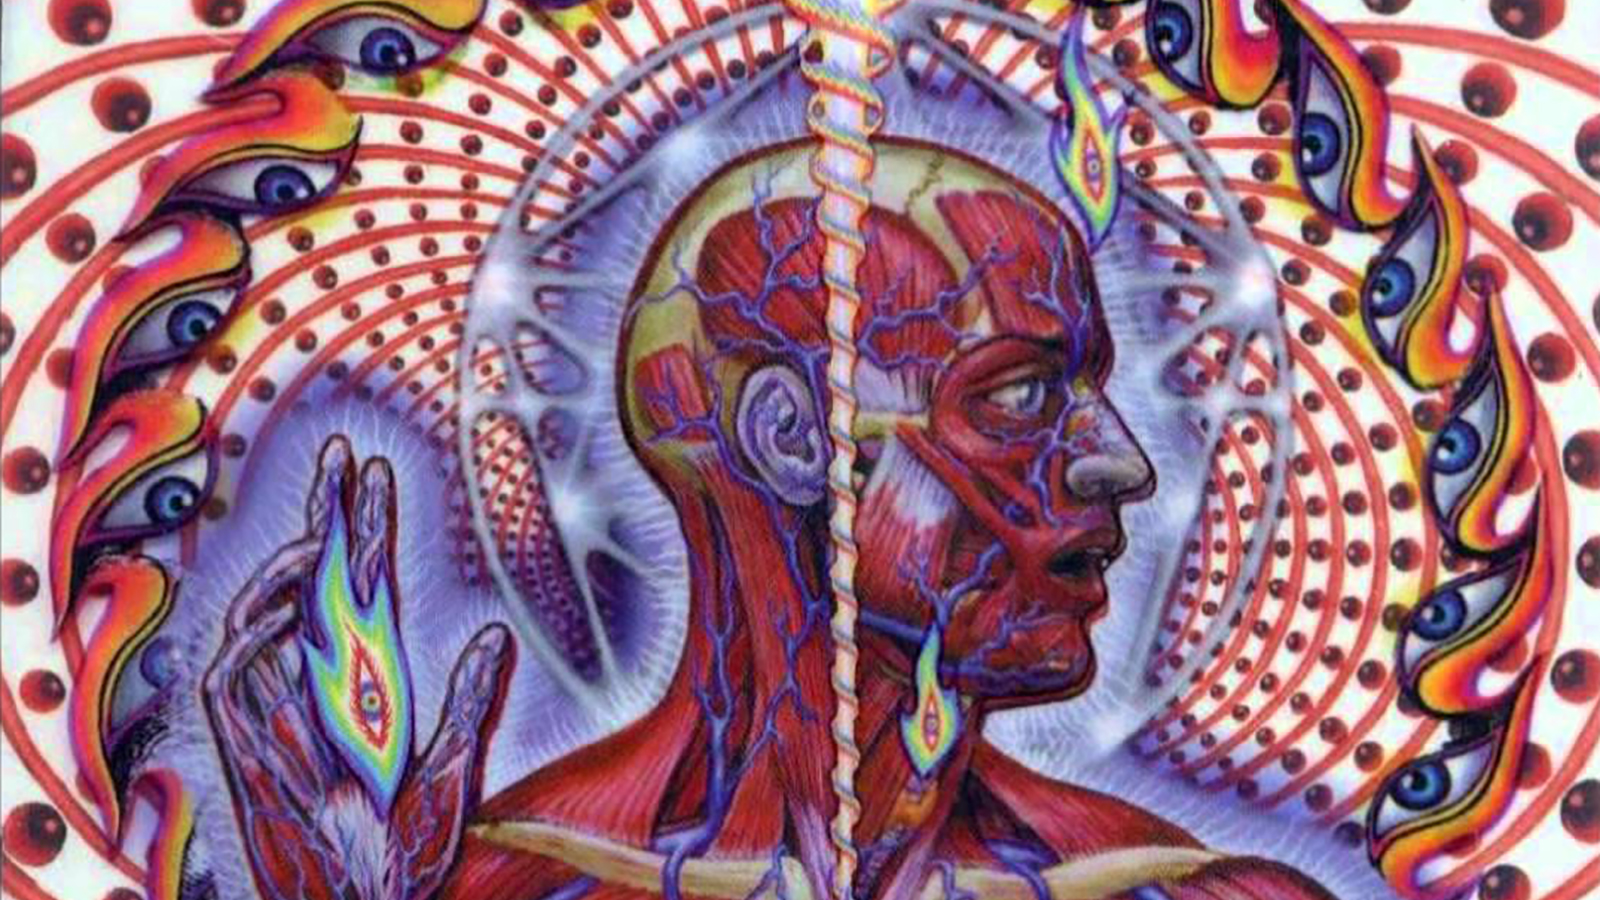 Tool full album hd | TOOL discography and reviews  2019-03-28